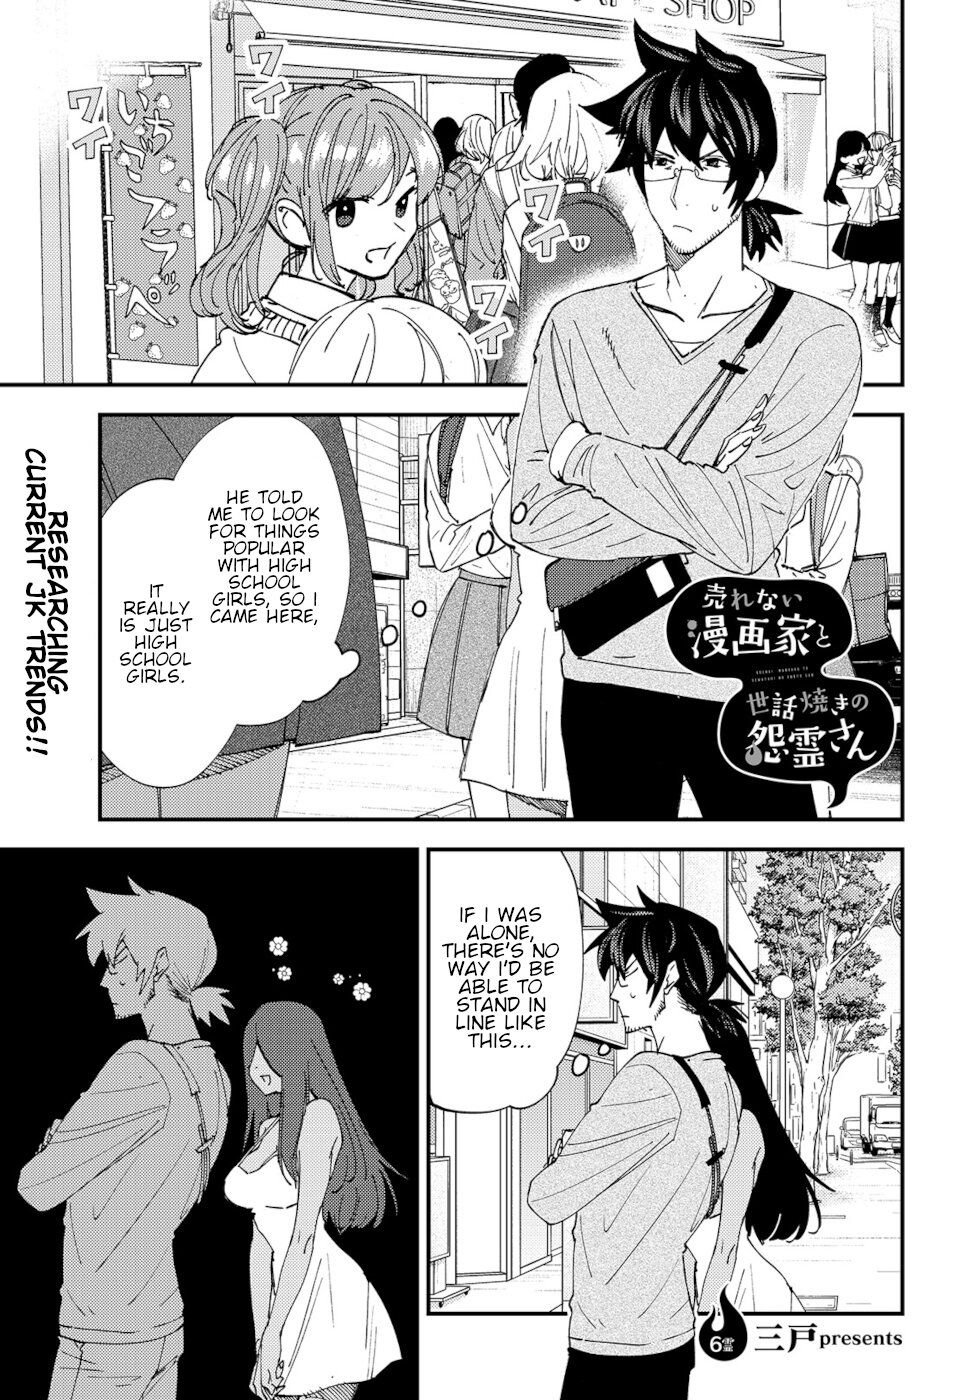 The Unpopular Mangaka And The Helpful Ghost - chapter 6 - #1